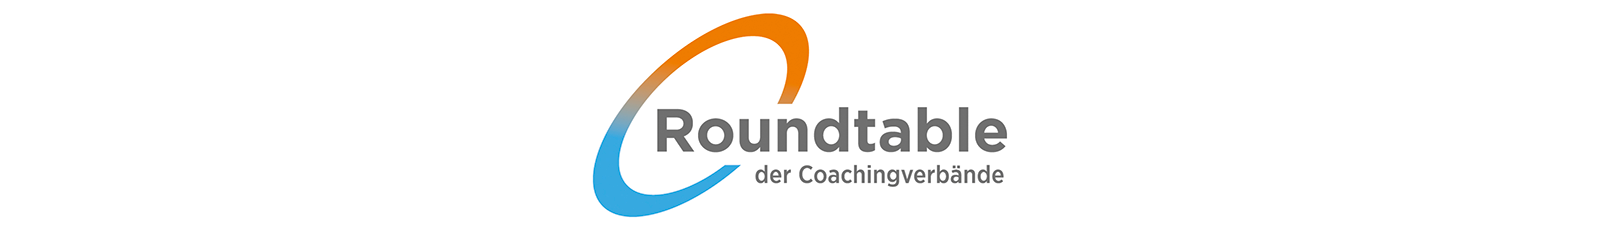 Roundtable der Coachingverbände